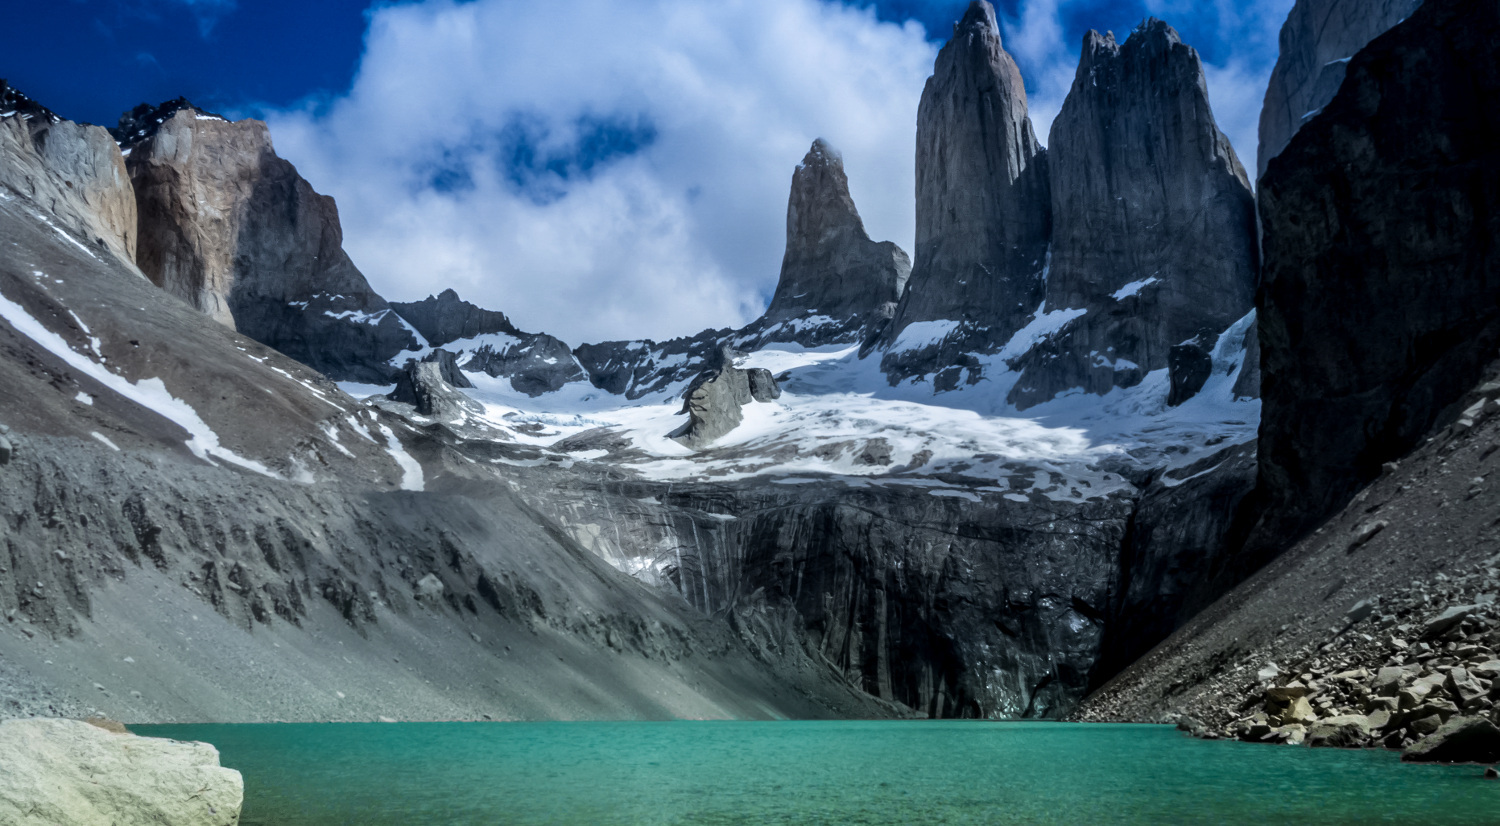 Torres del Paine, na Patagônia chilena